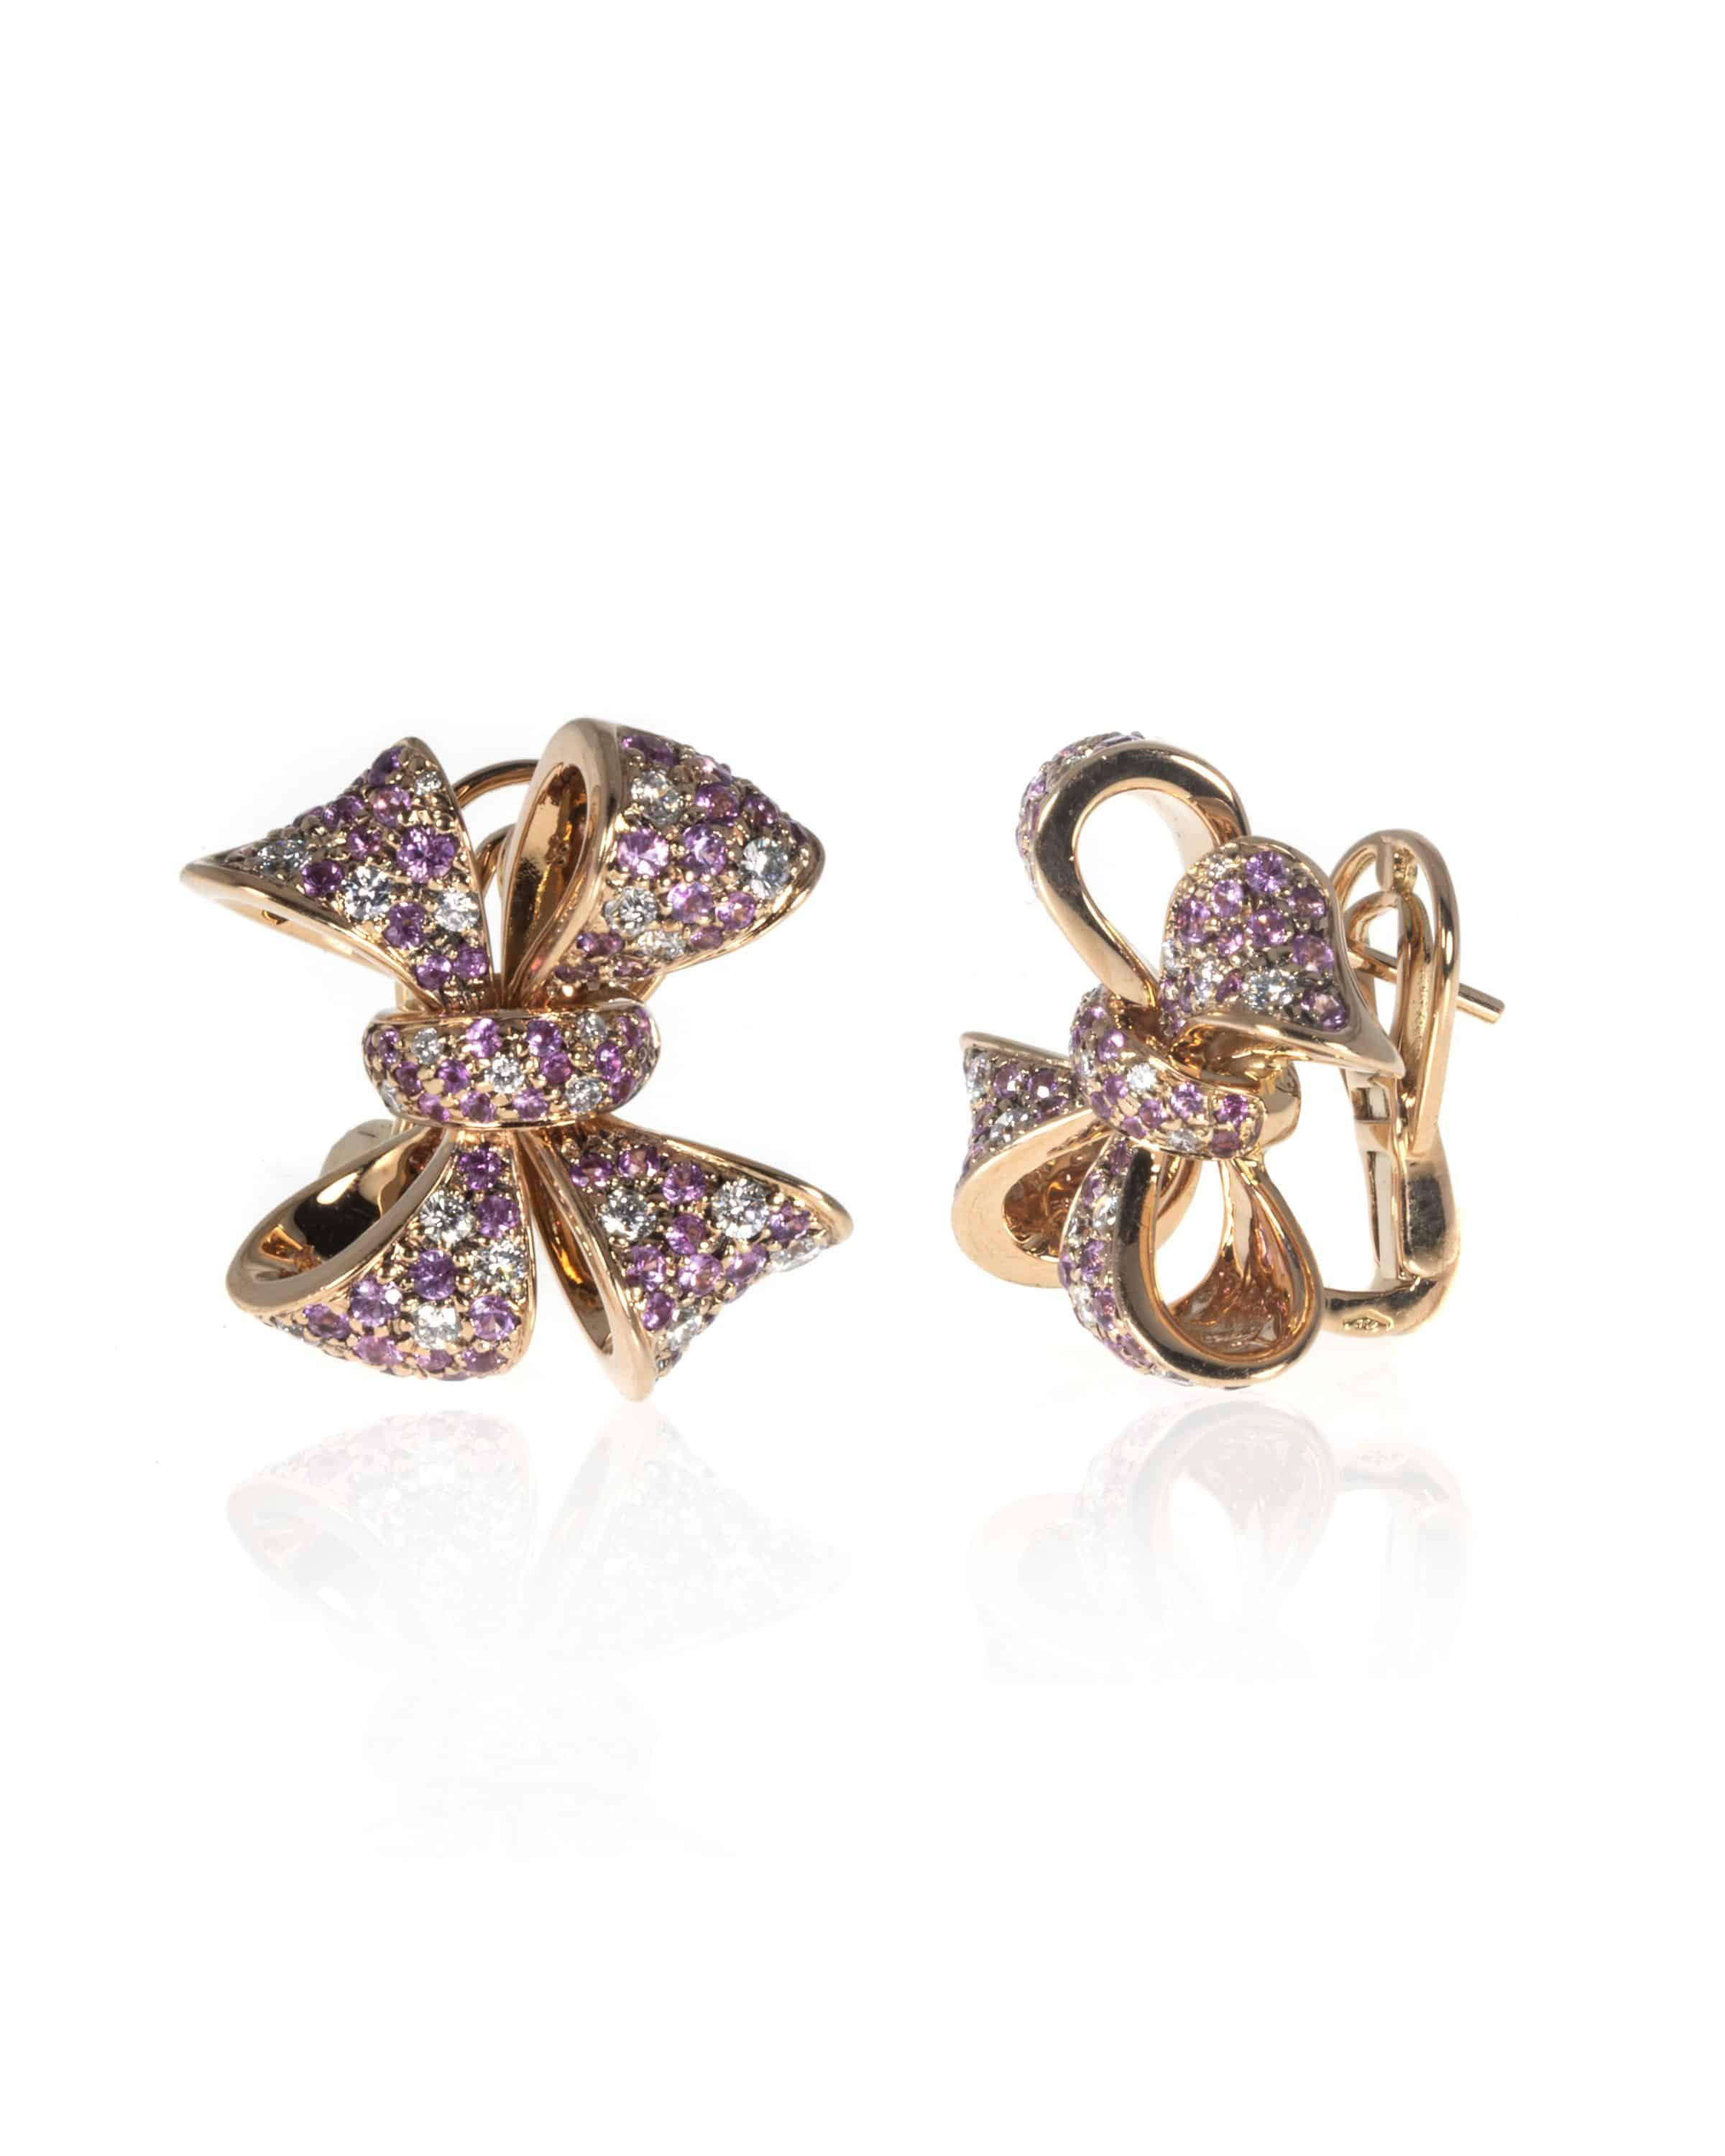 Crivelli 18k Rose Gold Diamond And Sapphire Earrings 274-CRB030-62319964